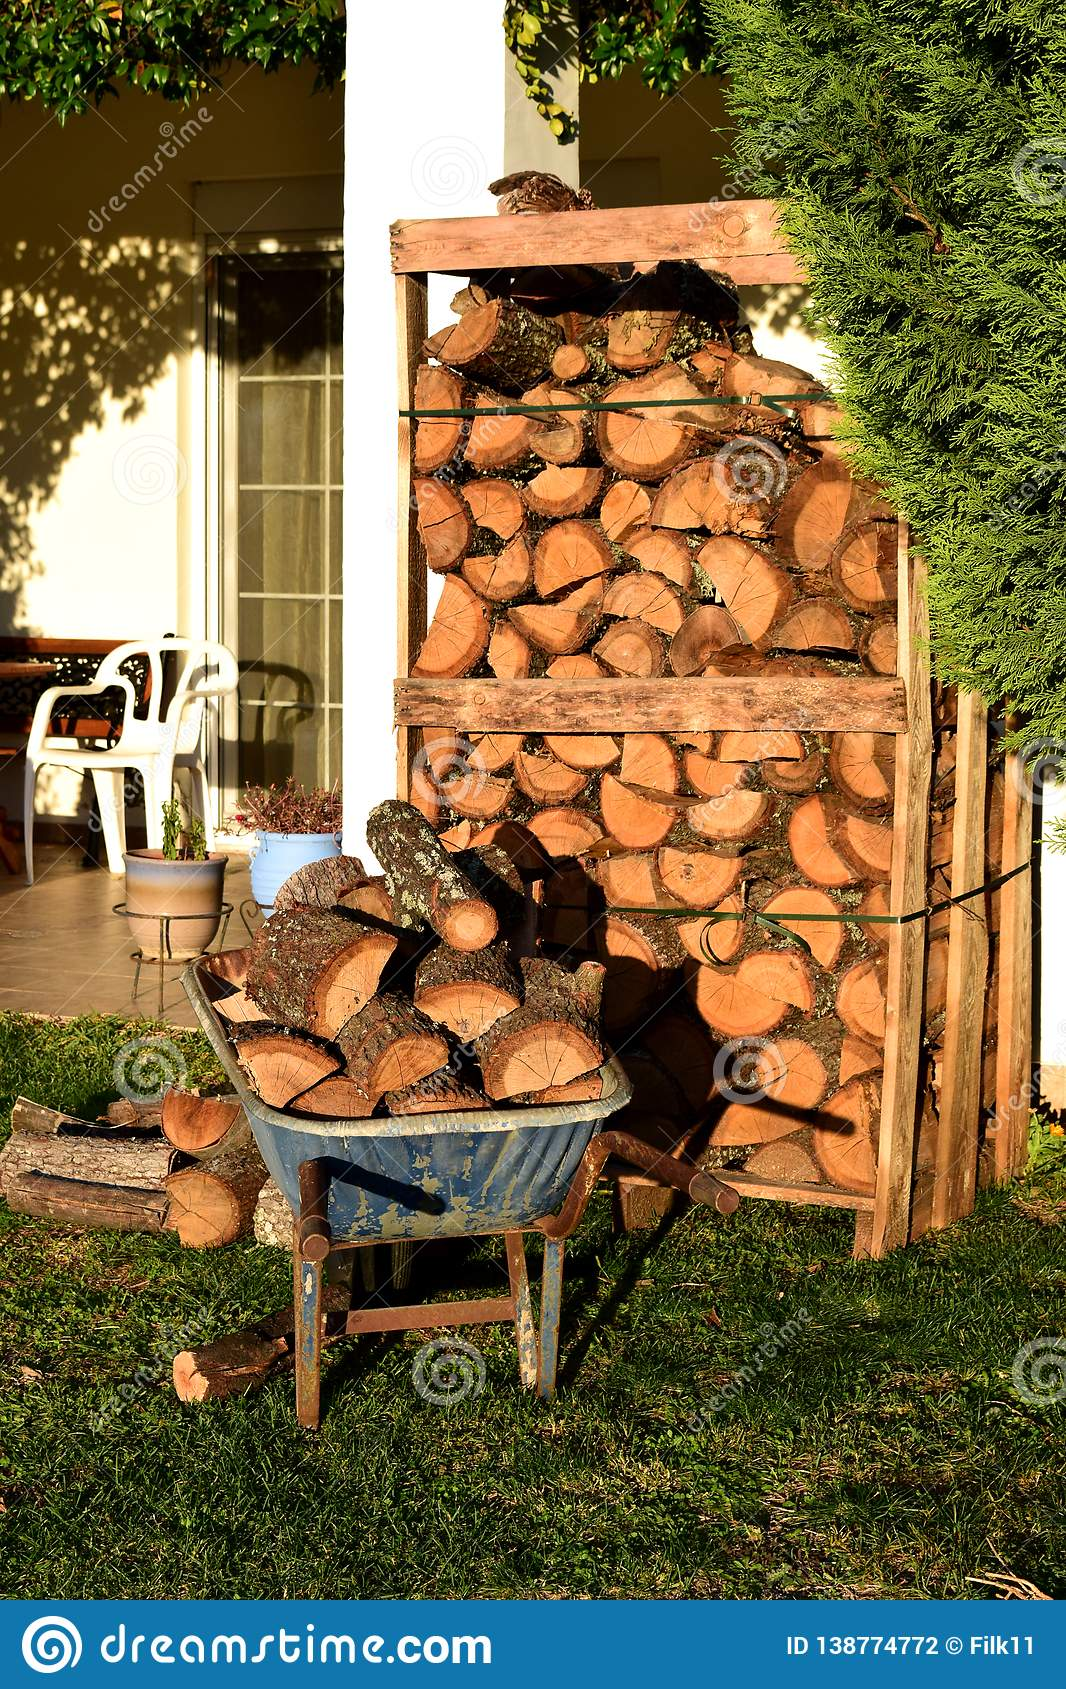 Wheel barrow and pallet full of woods for winter in the garden.